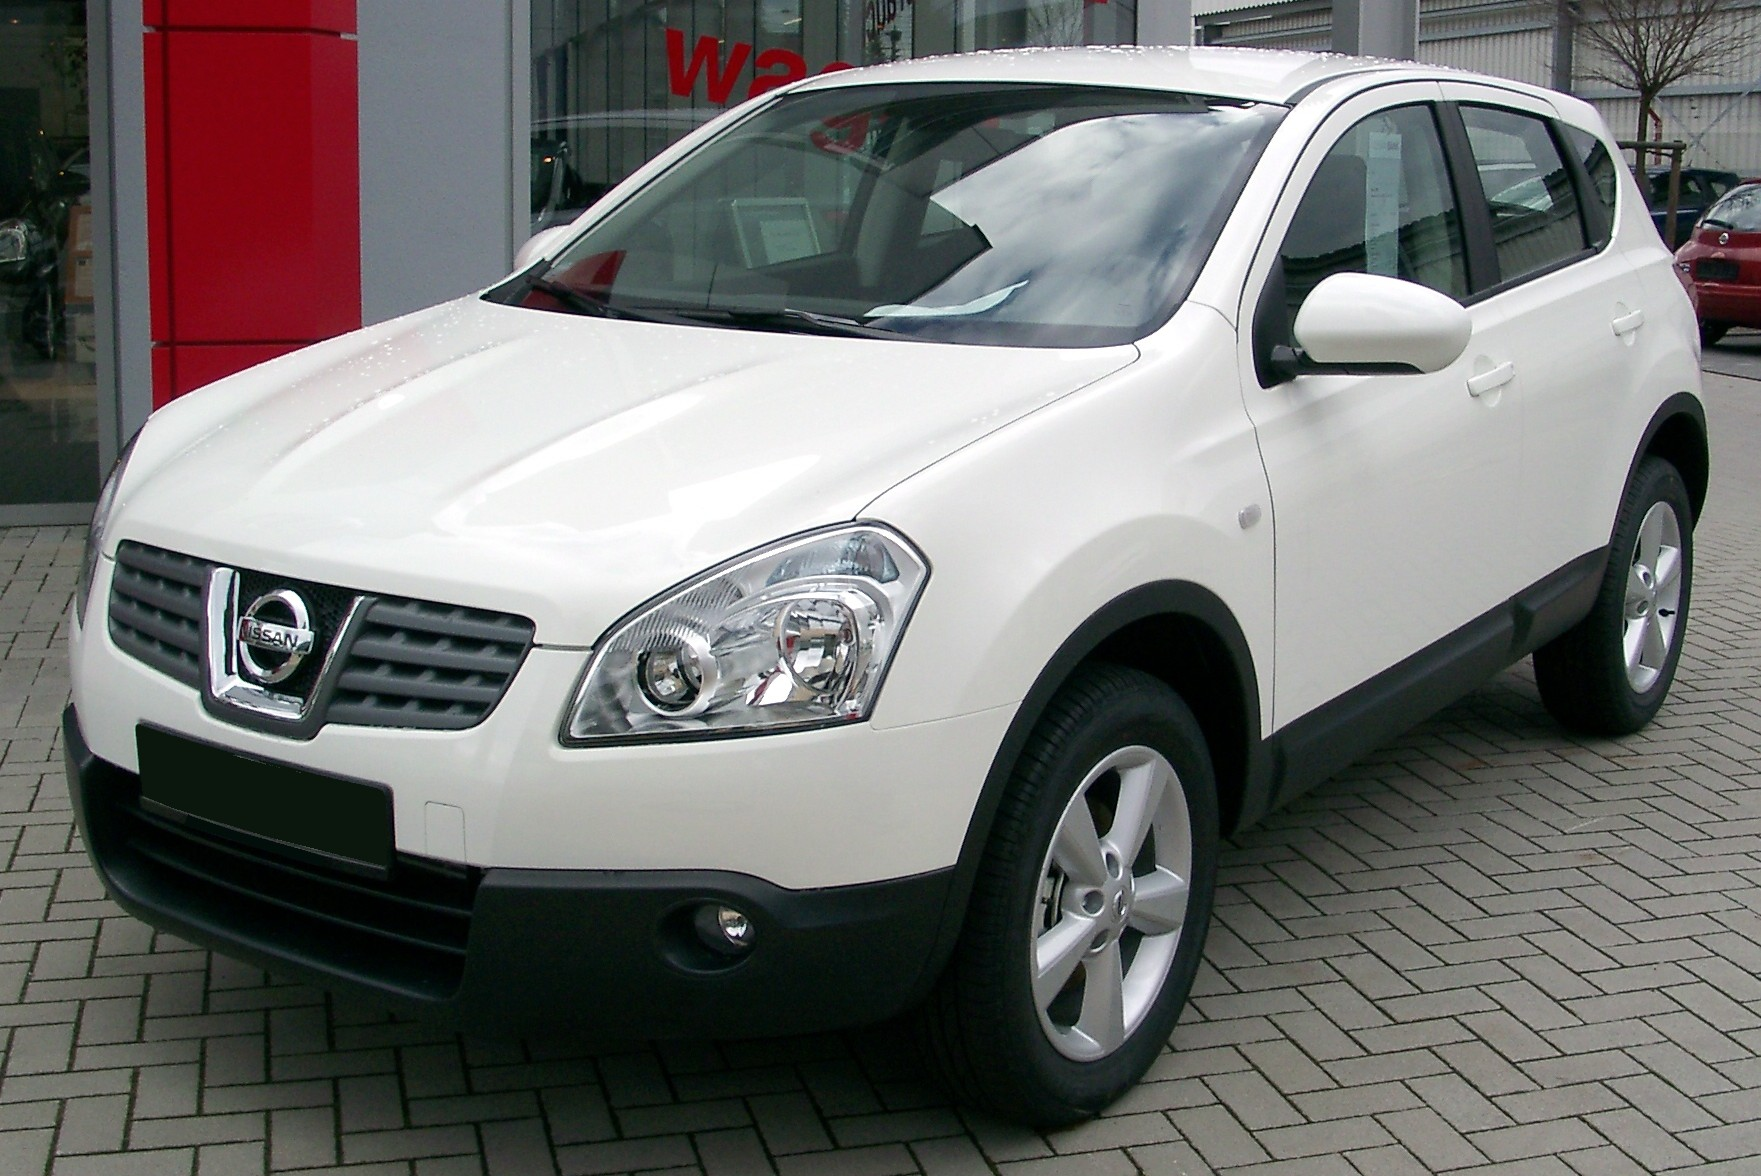 Nissan Qashqai Cars Picture